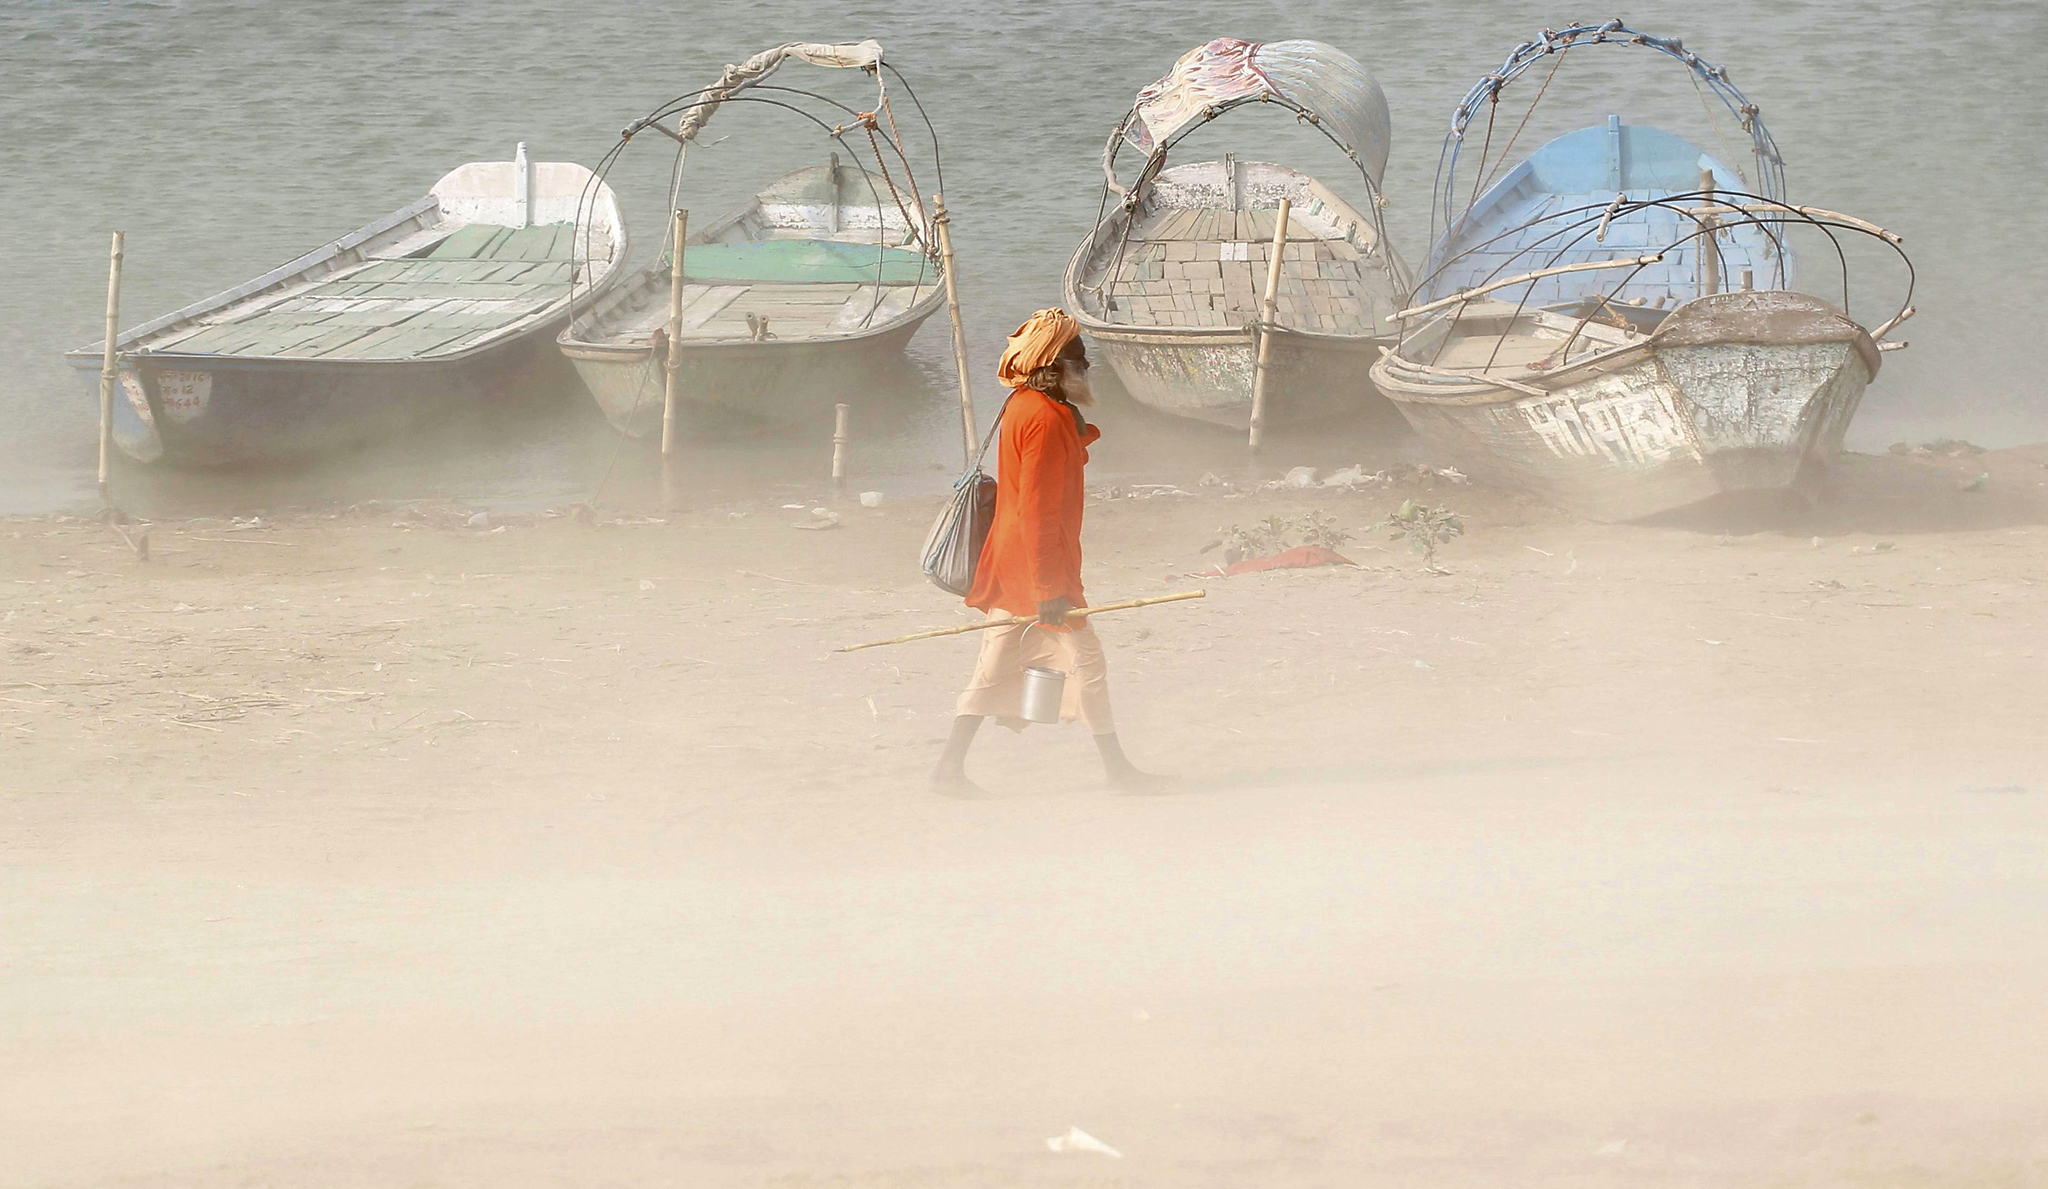 A Sadhu or a Hindu holy man walks on the banks of the river Ganges during a dust storm in Allahabad, India, June 9, 2016. REUTERS/Jitendra Prakash